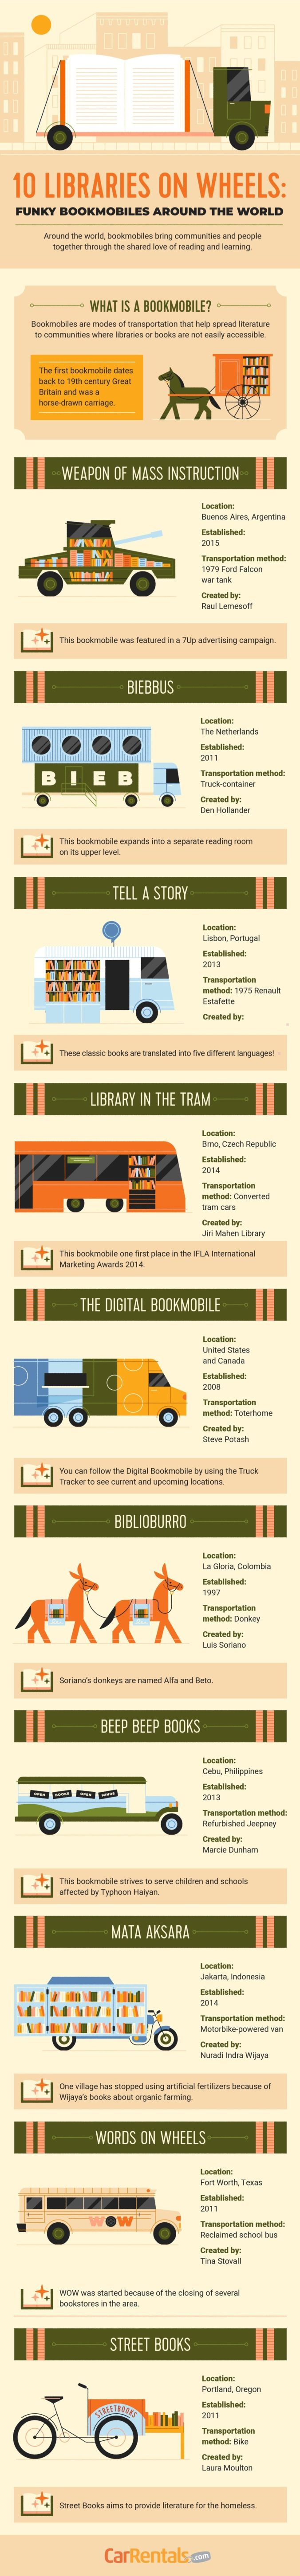 Coolest bookmobiles libraries on wheels - full infographic